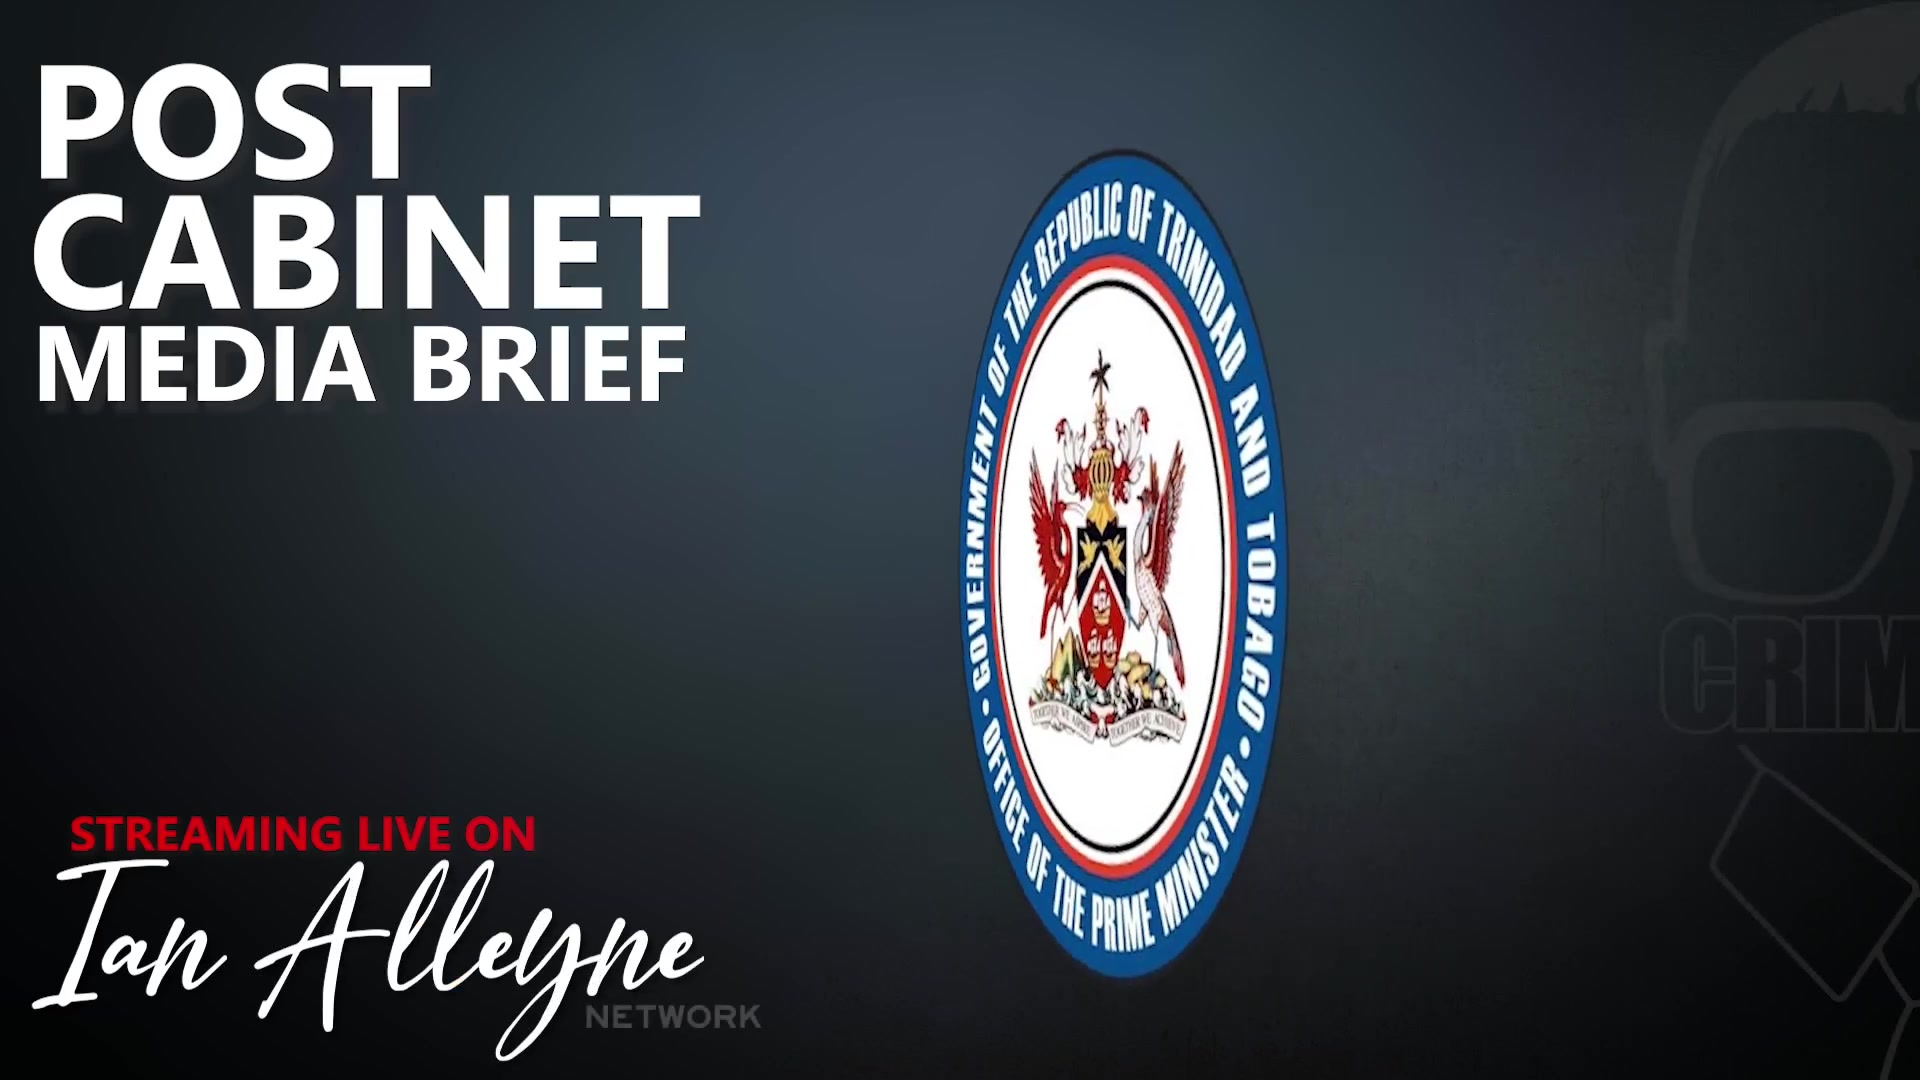 THURSDAY 20TH MAY 2021: POST-CABINET MEDIA BRIEFING